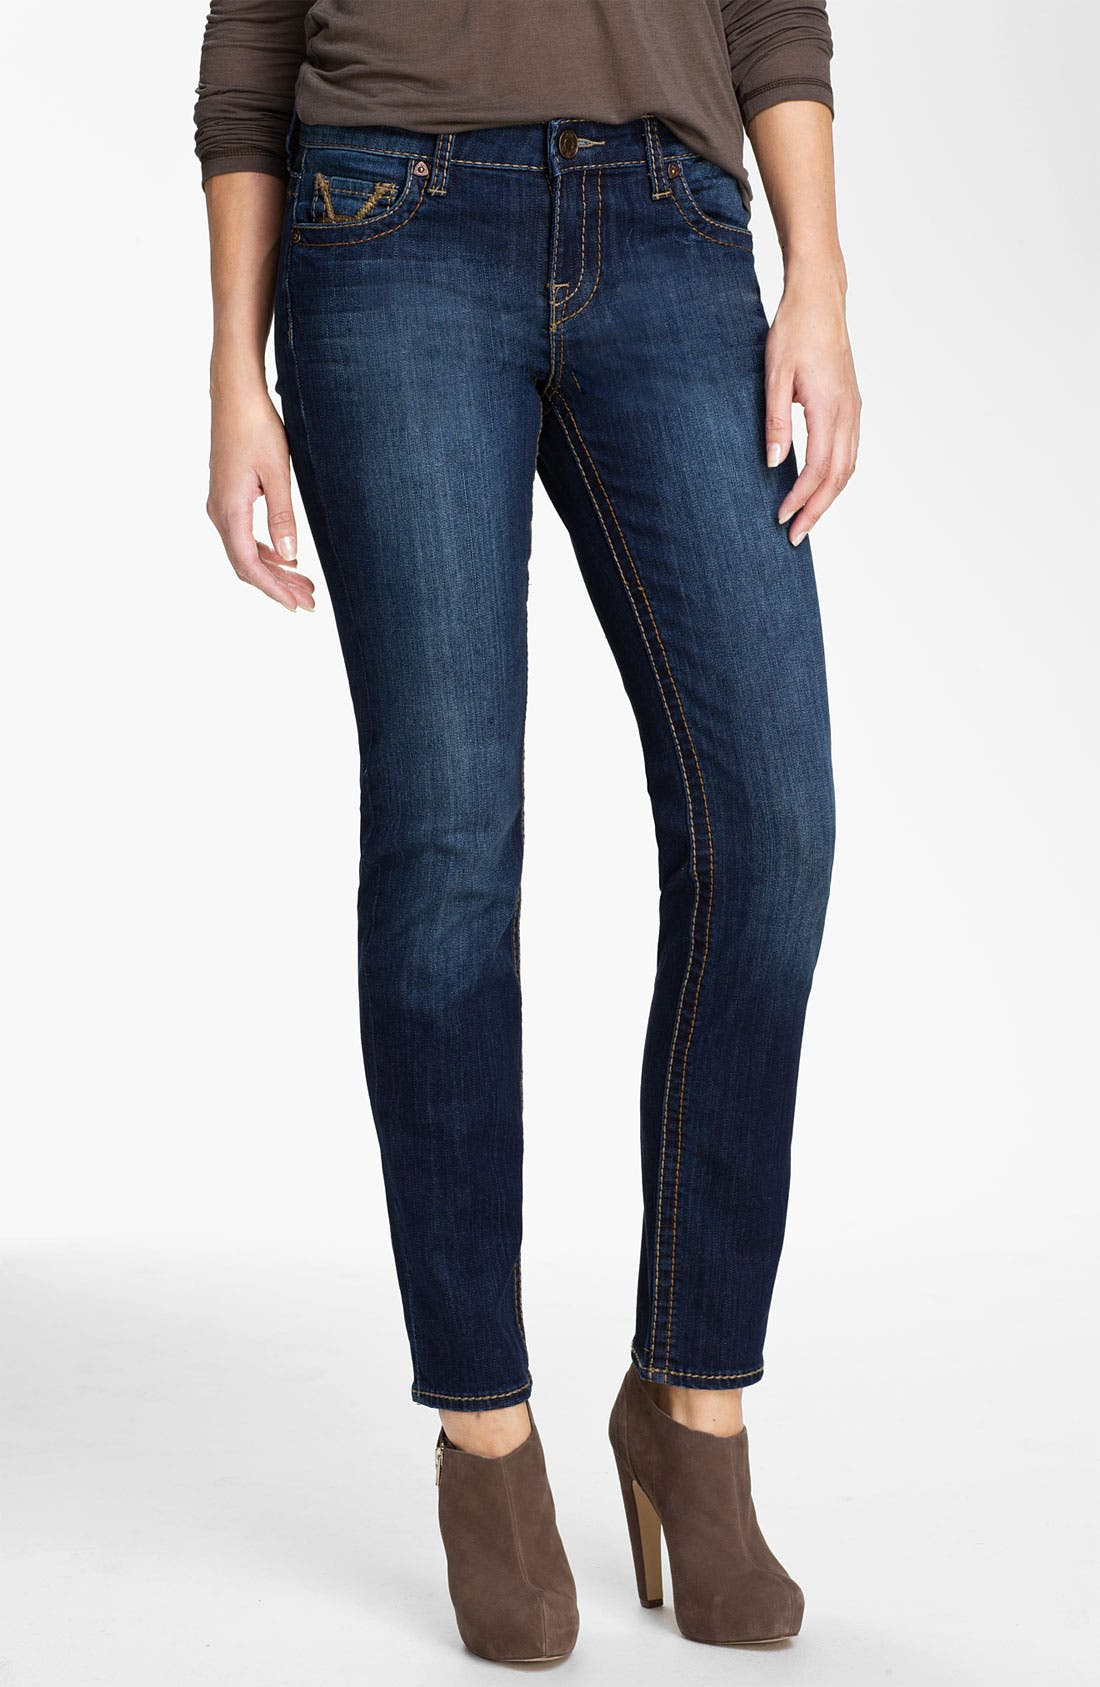 Main Image - KUT from the Kloth 'Stevie' Straight Leg Jeans (Gratitude) (Online Only)